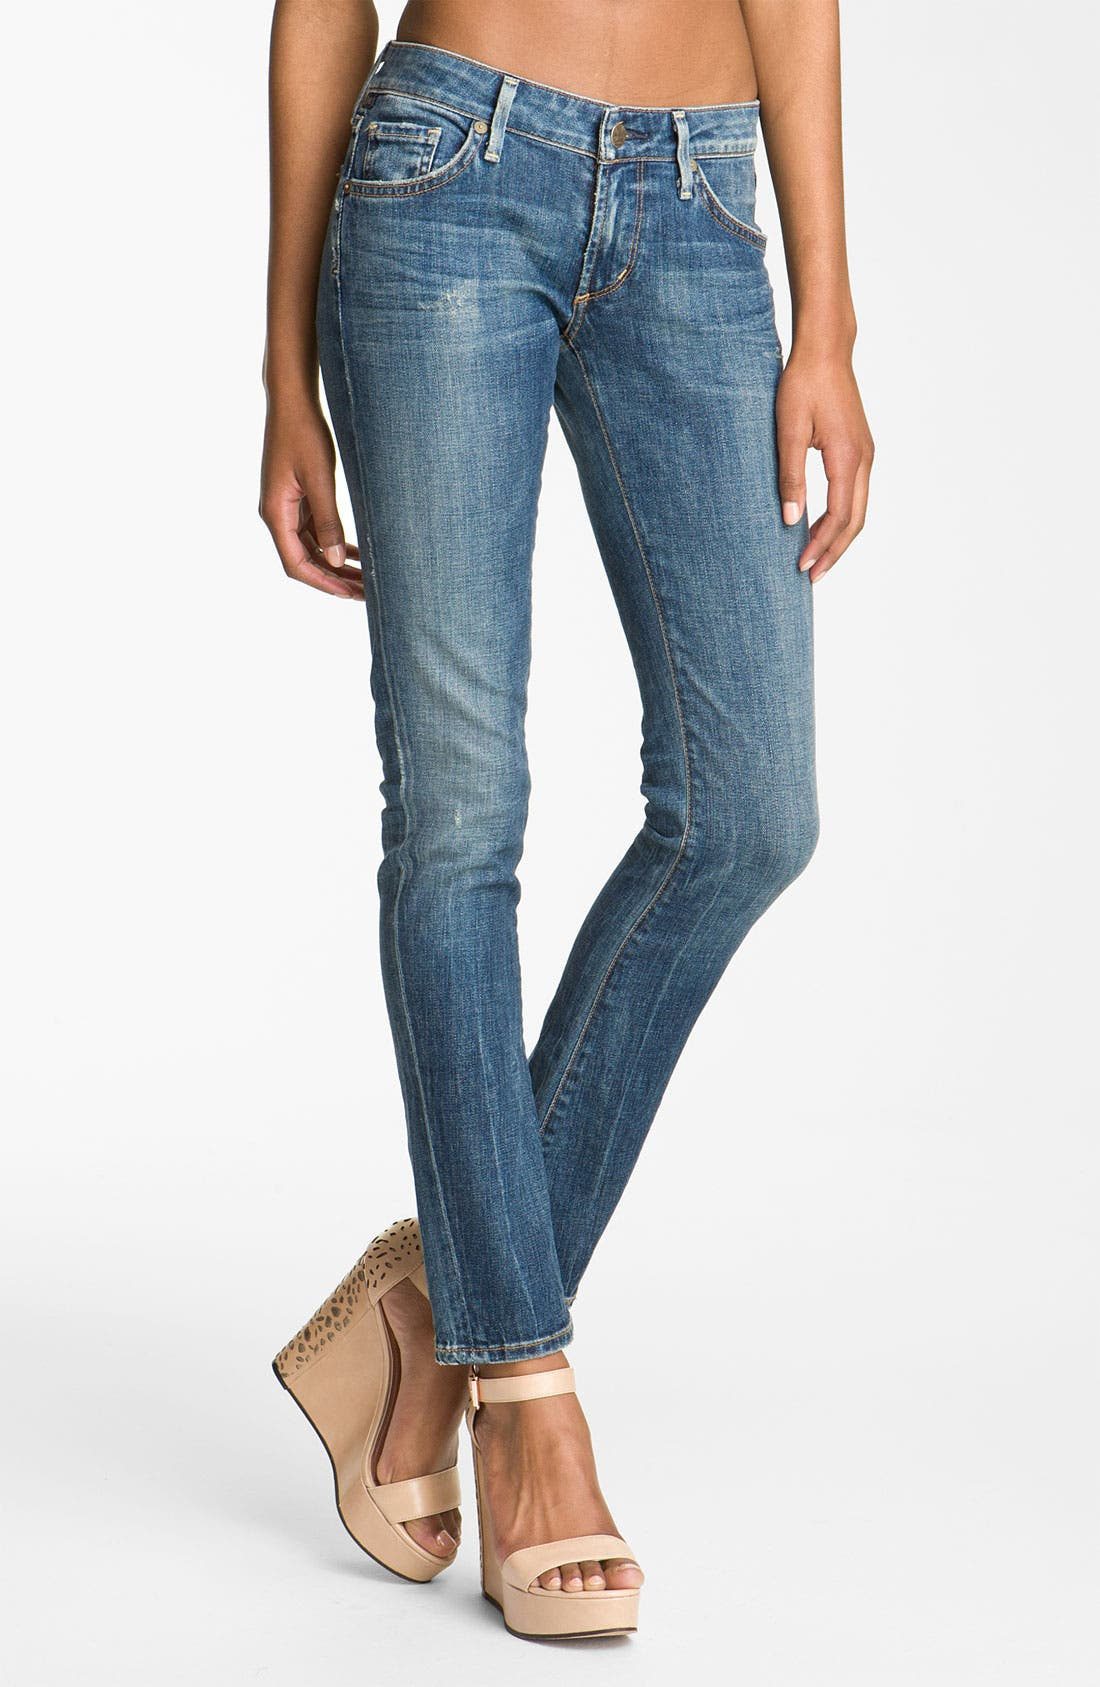 Main Image - Citizens of Humanity 'Racer' Low Rise Skinny Jeans (Slash)